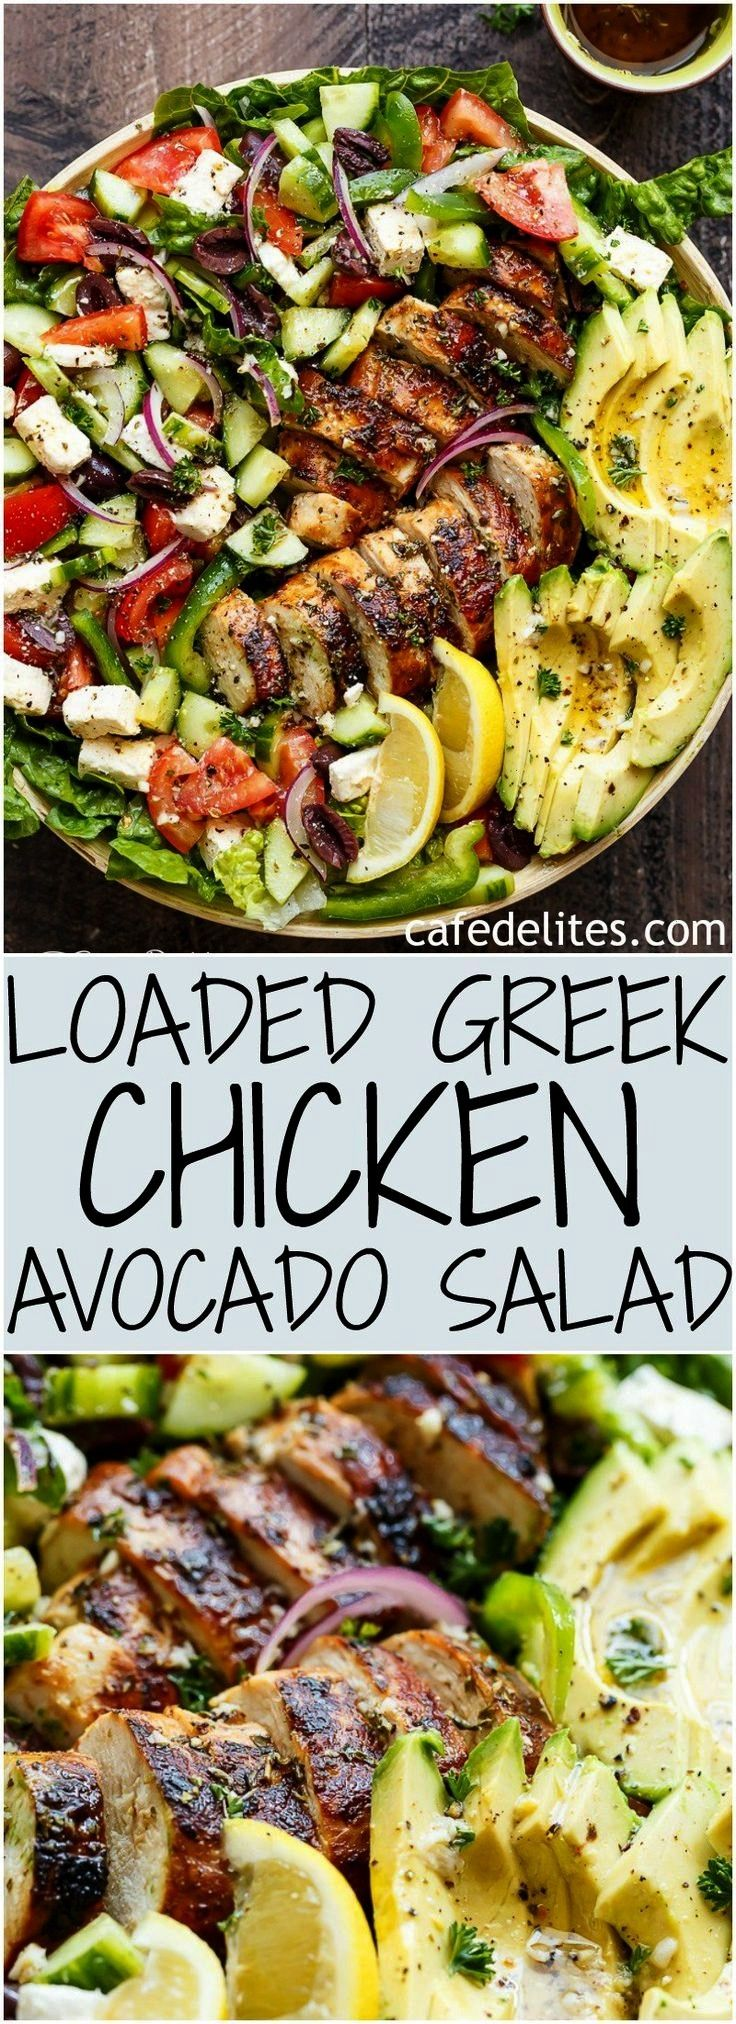 Greek Chicken Avocado Salad is another meal in a salad! Full of Greek fla... -Loaded Greek Chicken